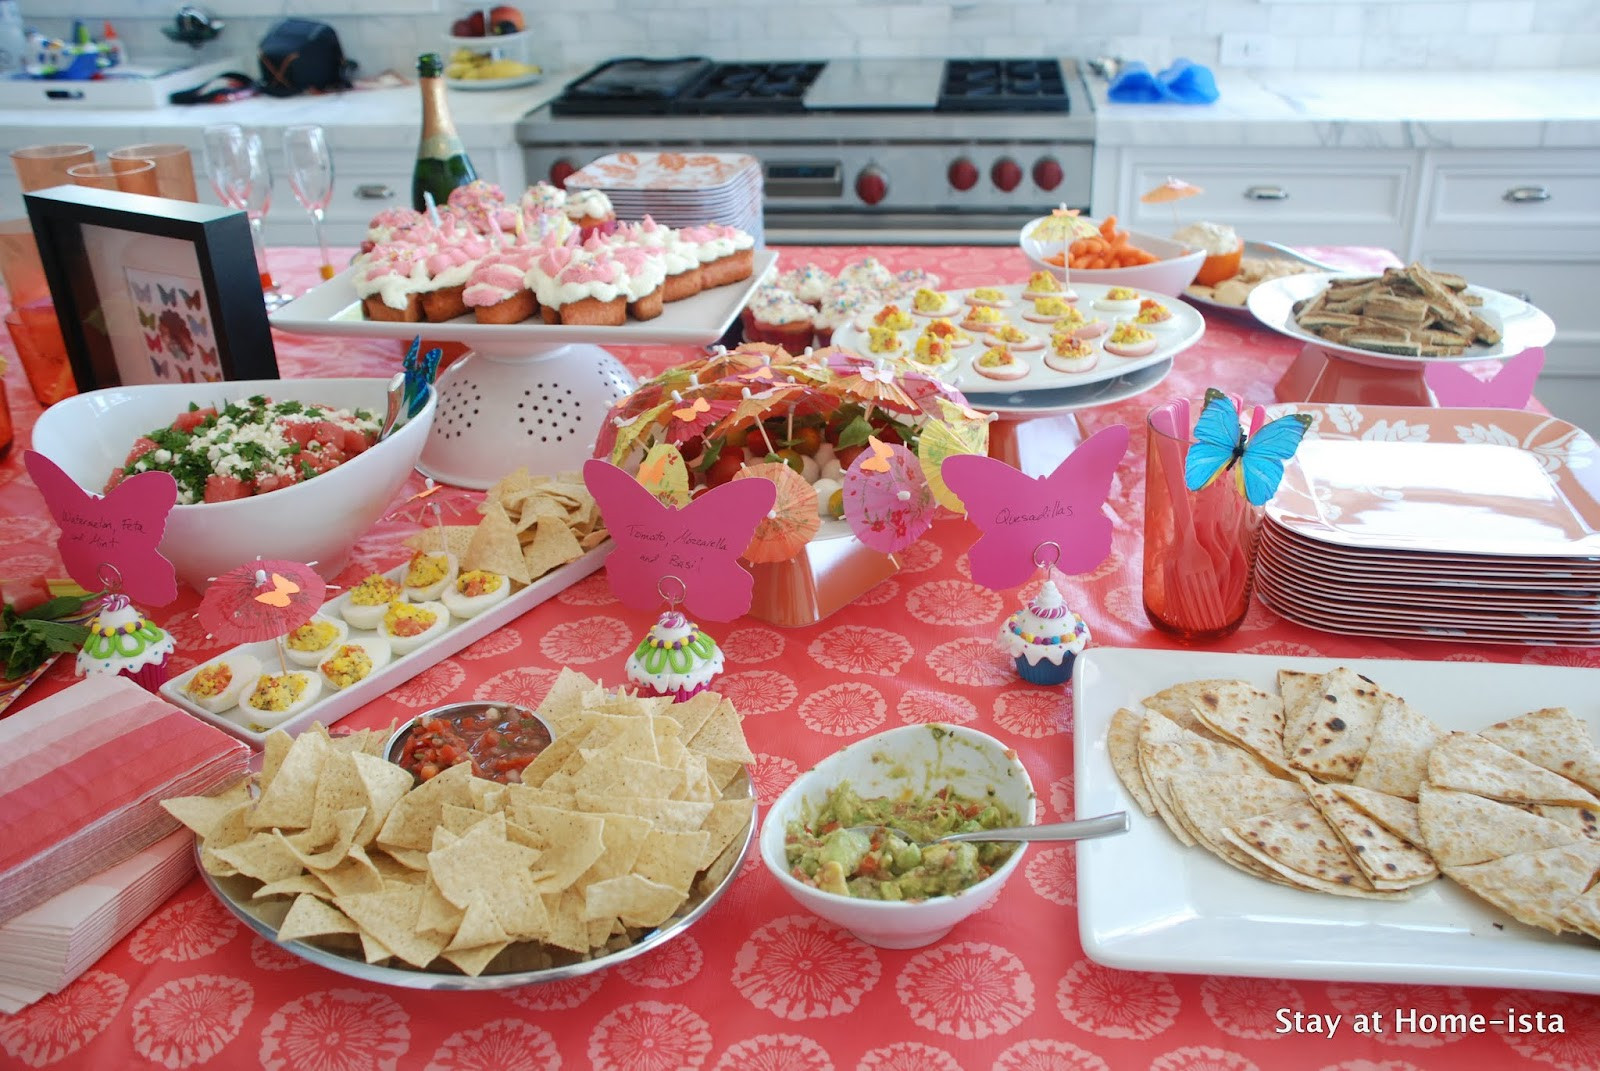 Best ideas about Birthday Party Menu . Save or Pin Stay at Home ista Summer Party Menu Food for a Butterfly Now.